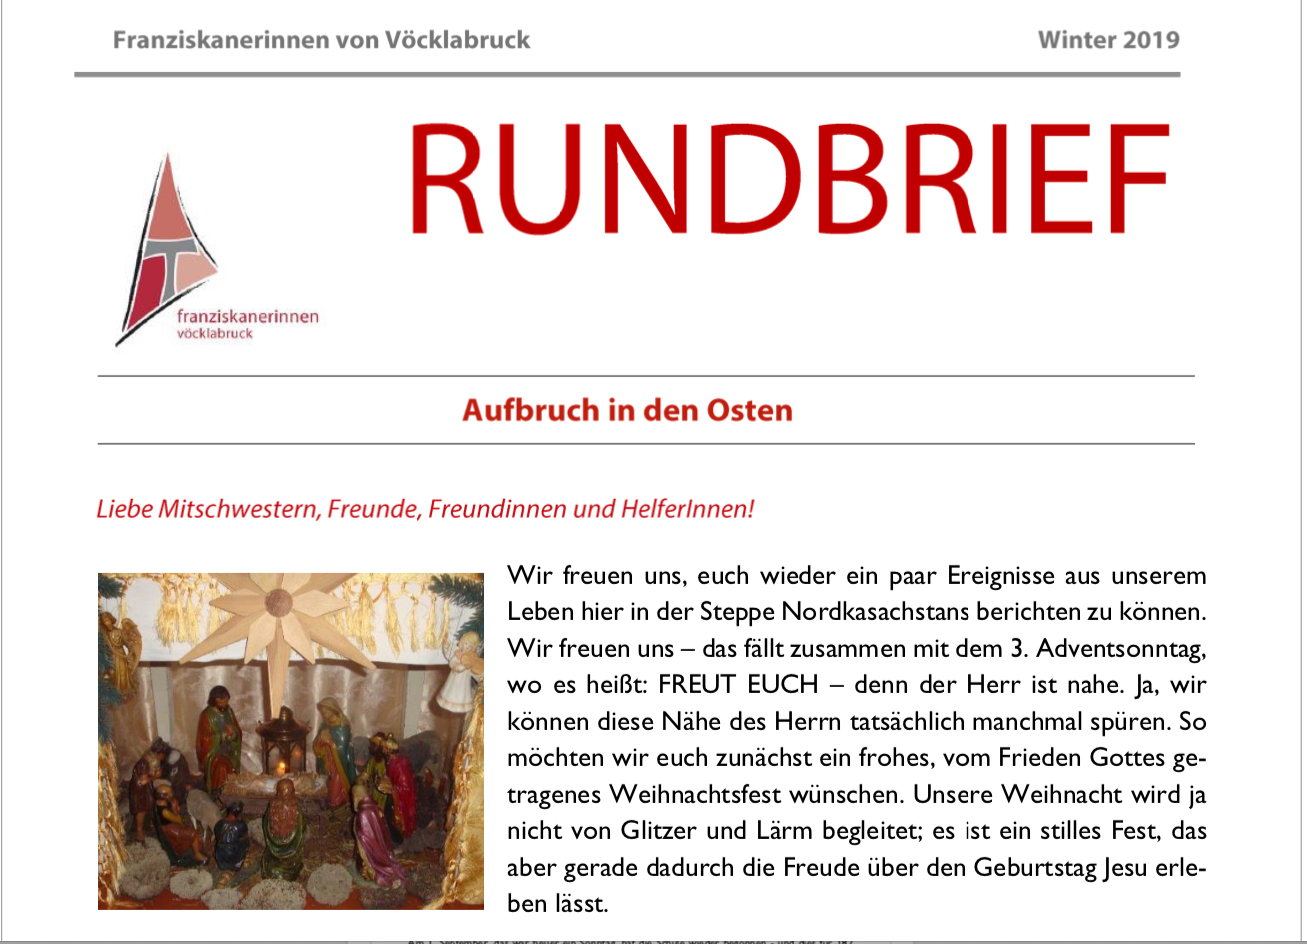 Rundbrief aus Kasachstan - Winter 2019